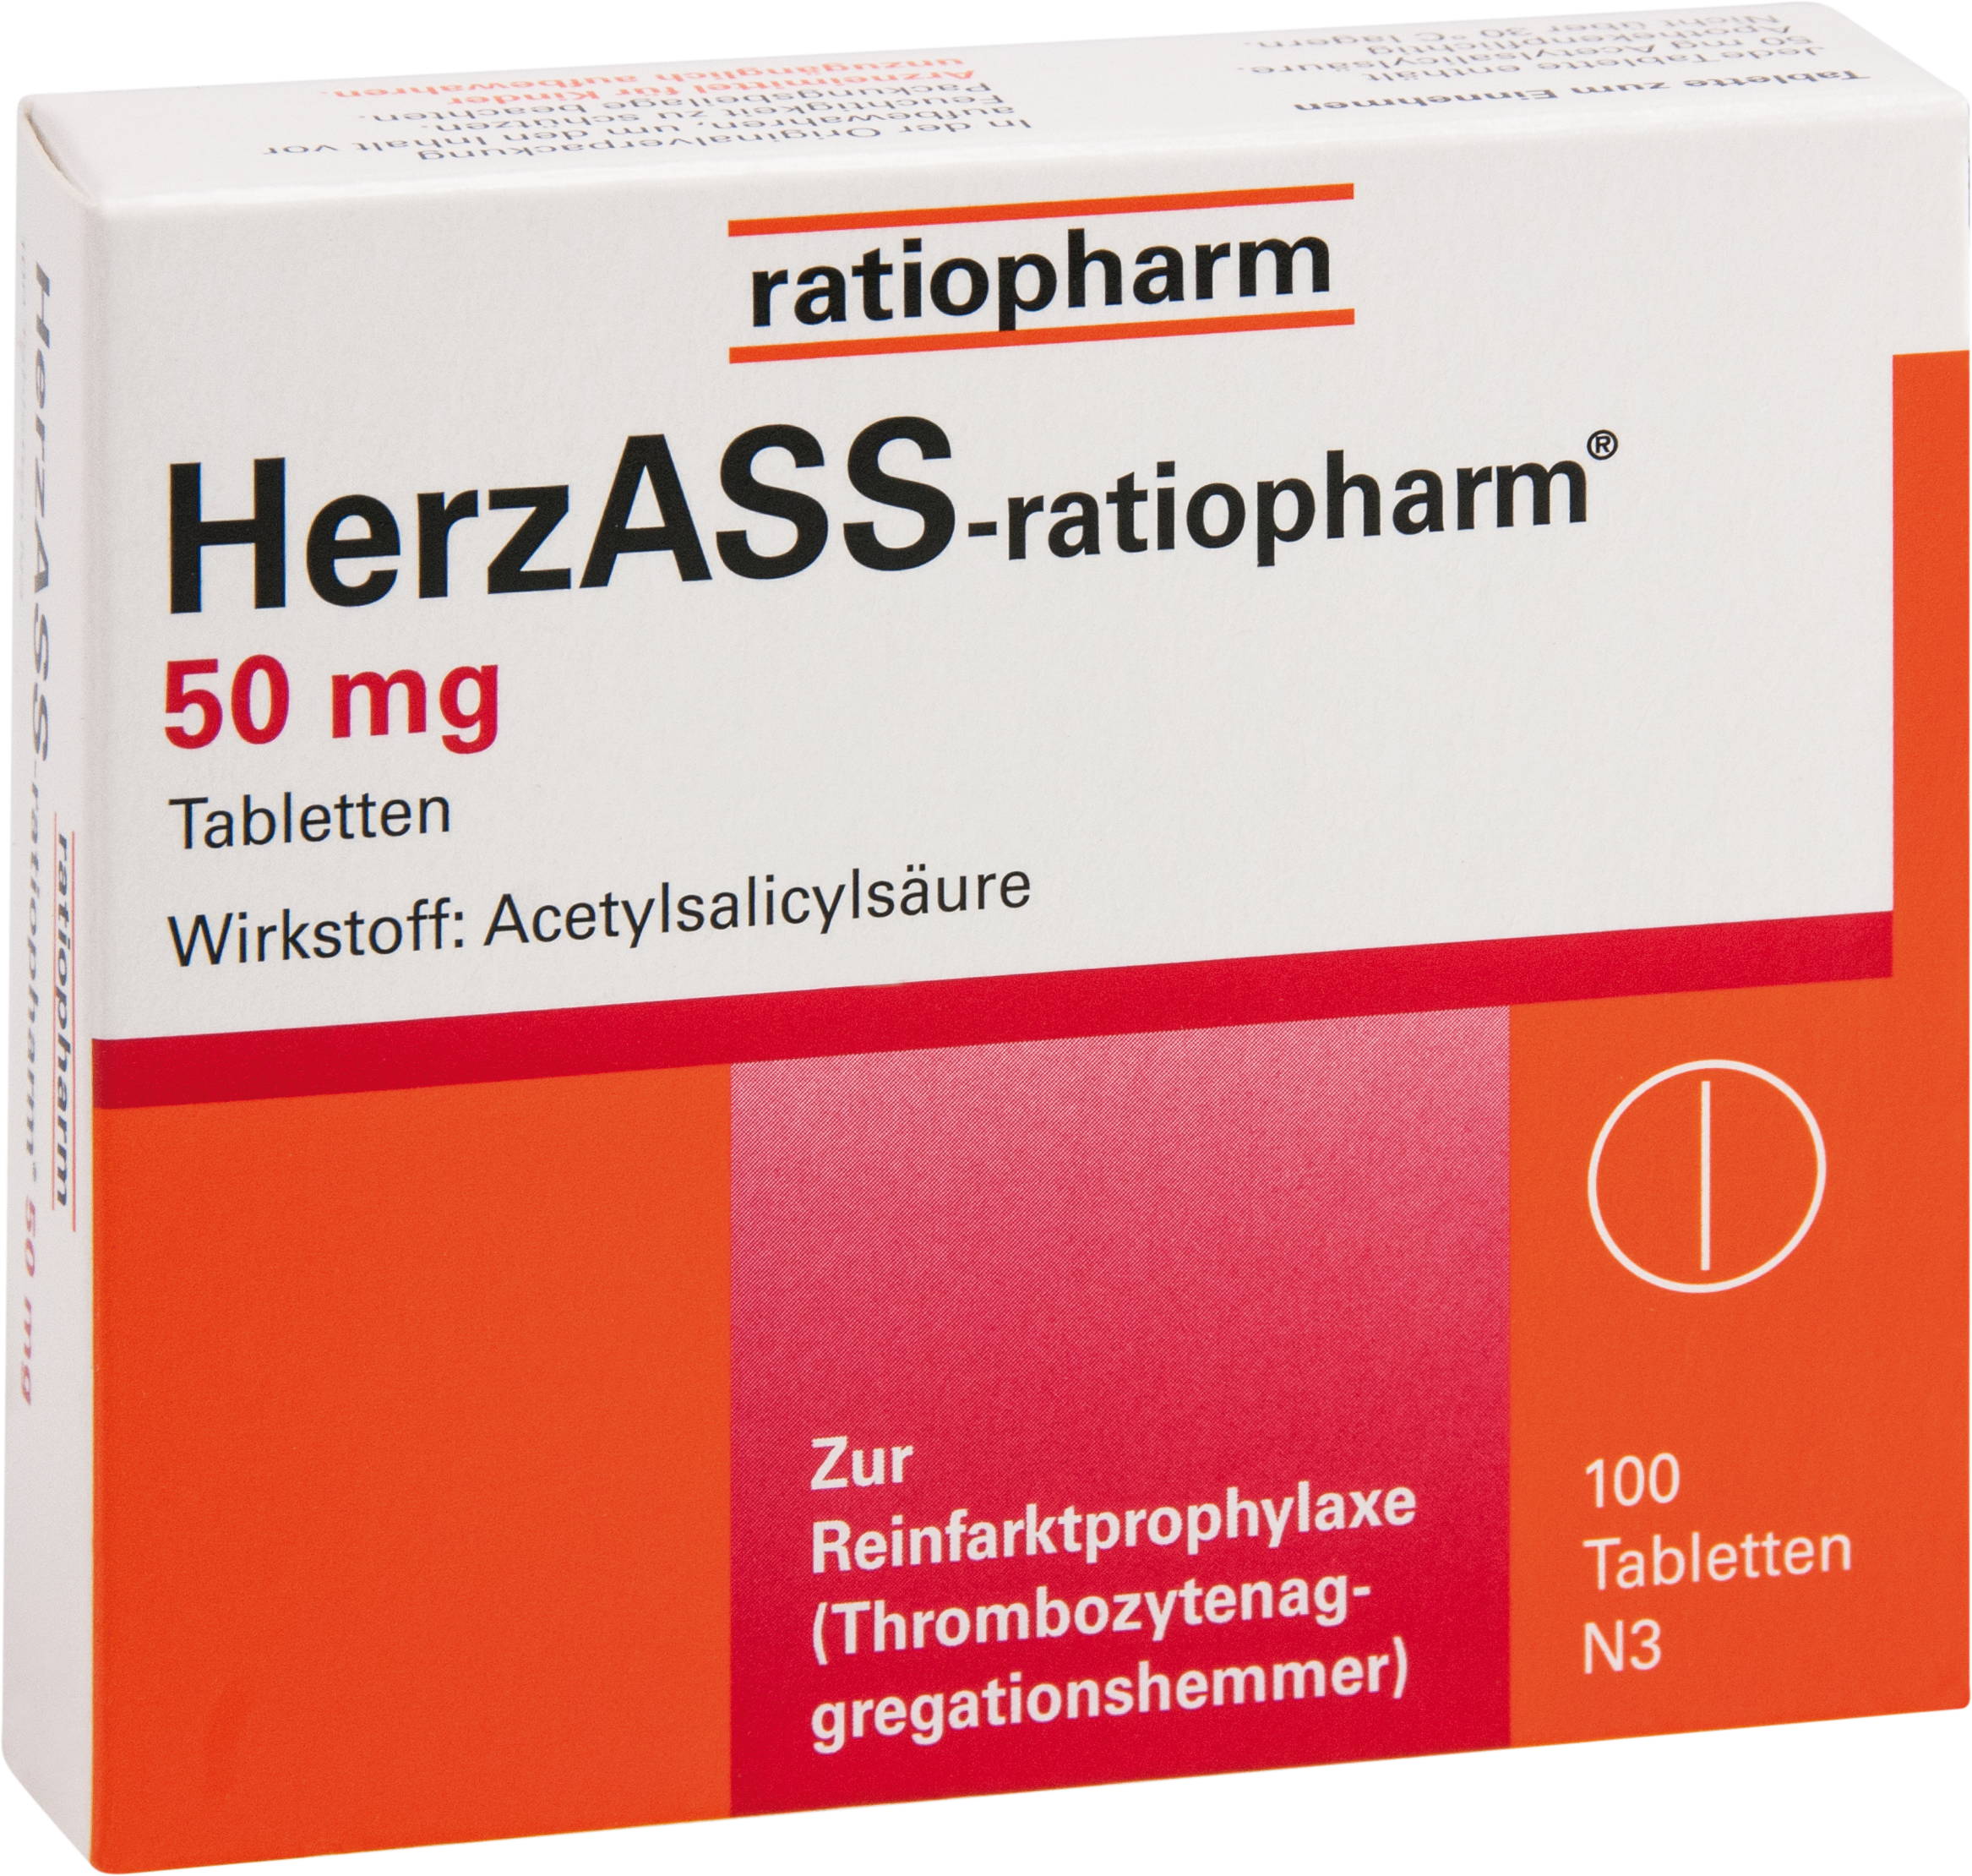 HerzASS-ratiopharm 50 mg